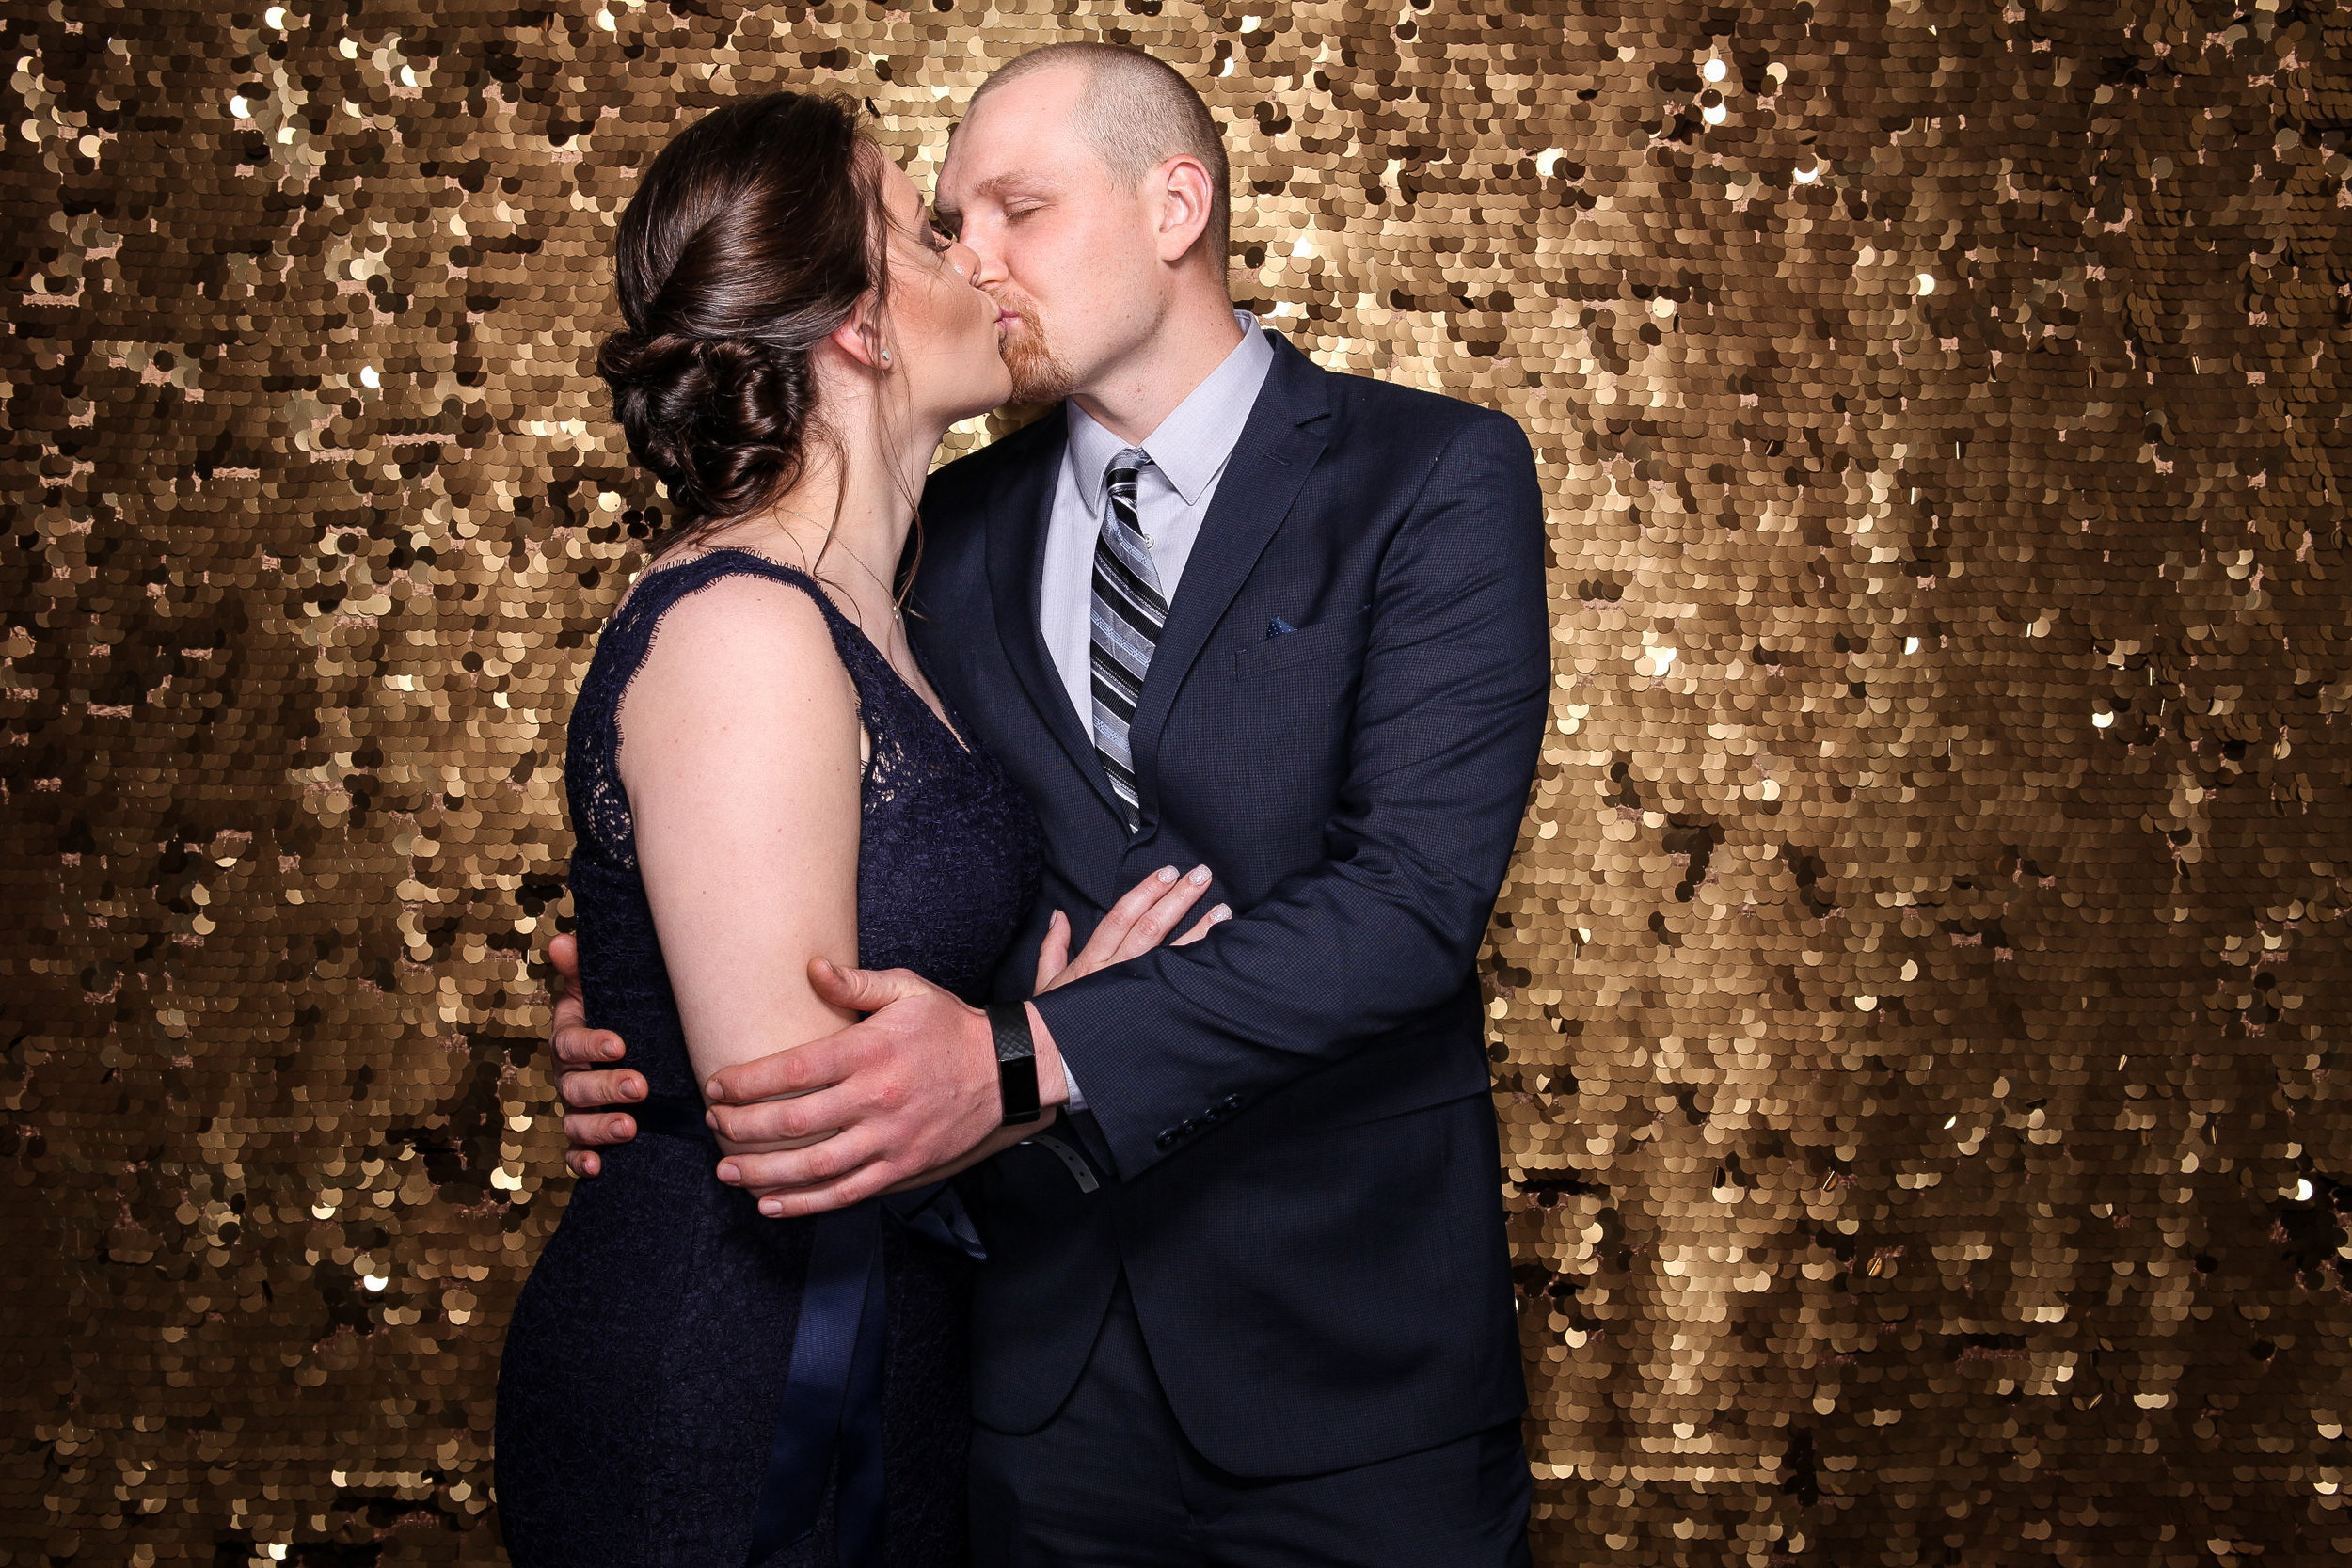 20190503_Adelphi_Senior_Formal-156.jpg